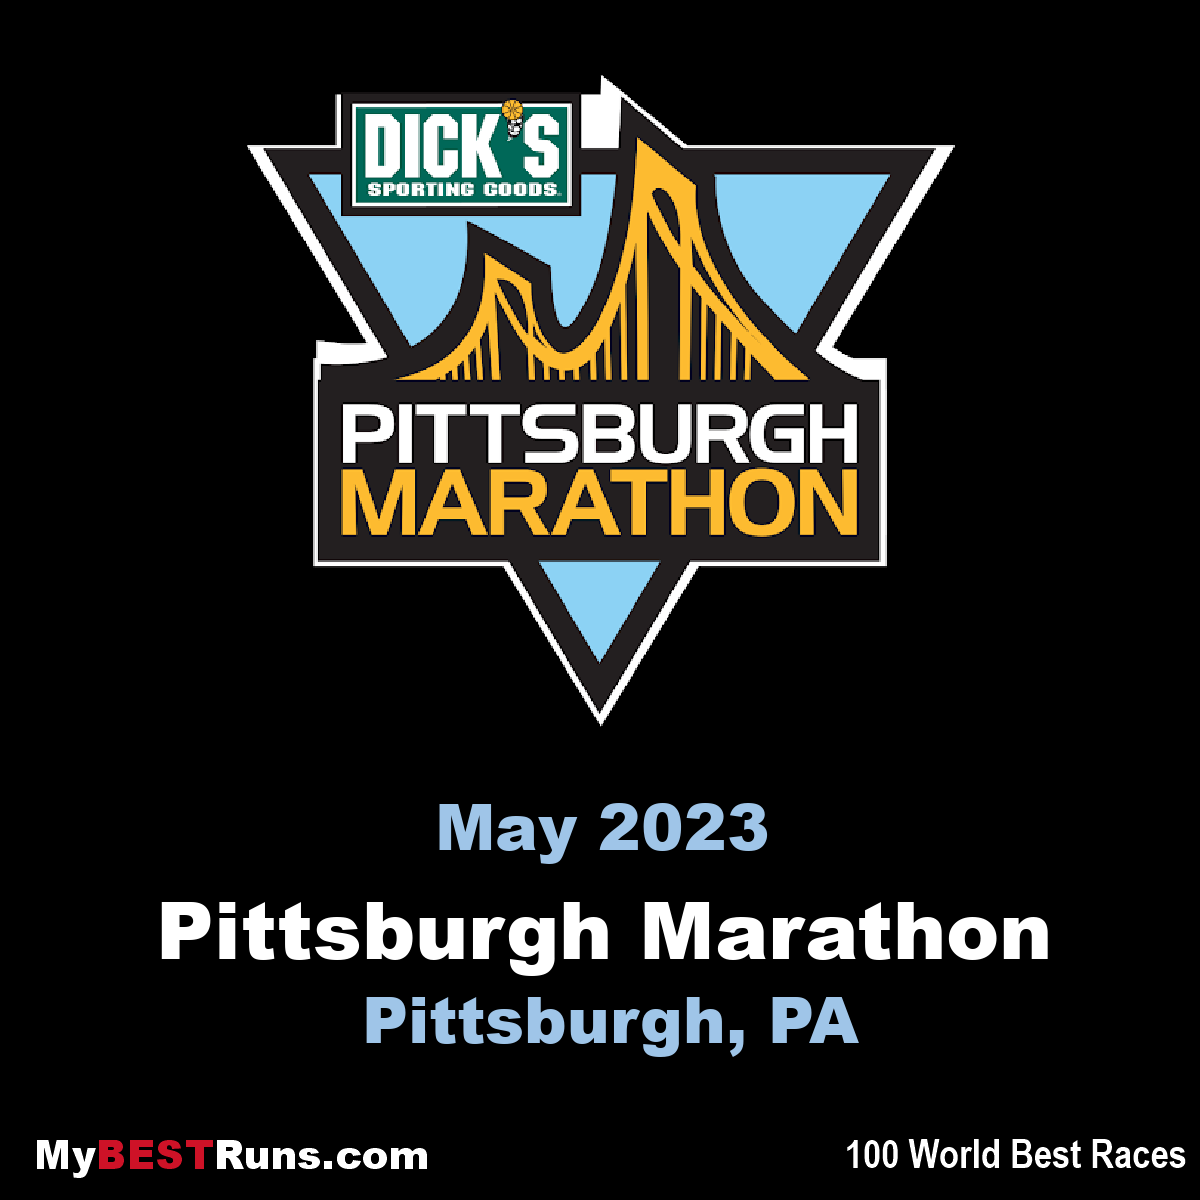 Dick's Sporting Good Pittsburgh Marathon